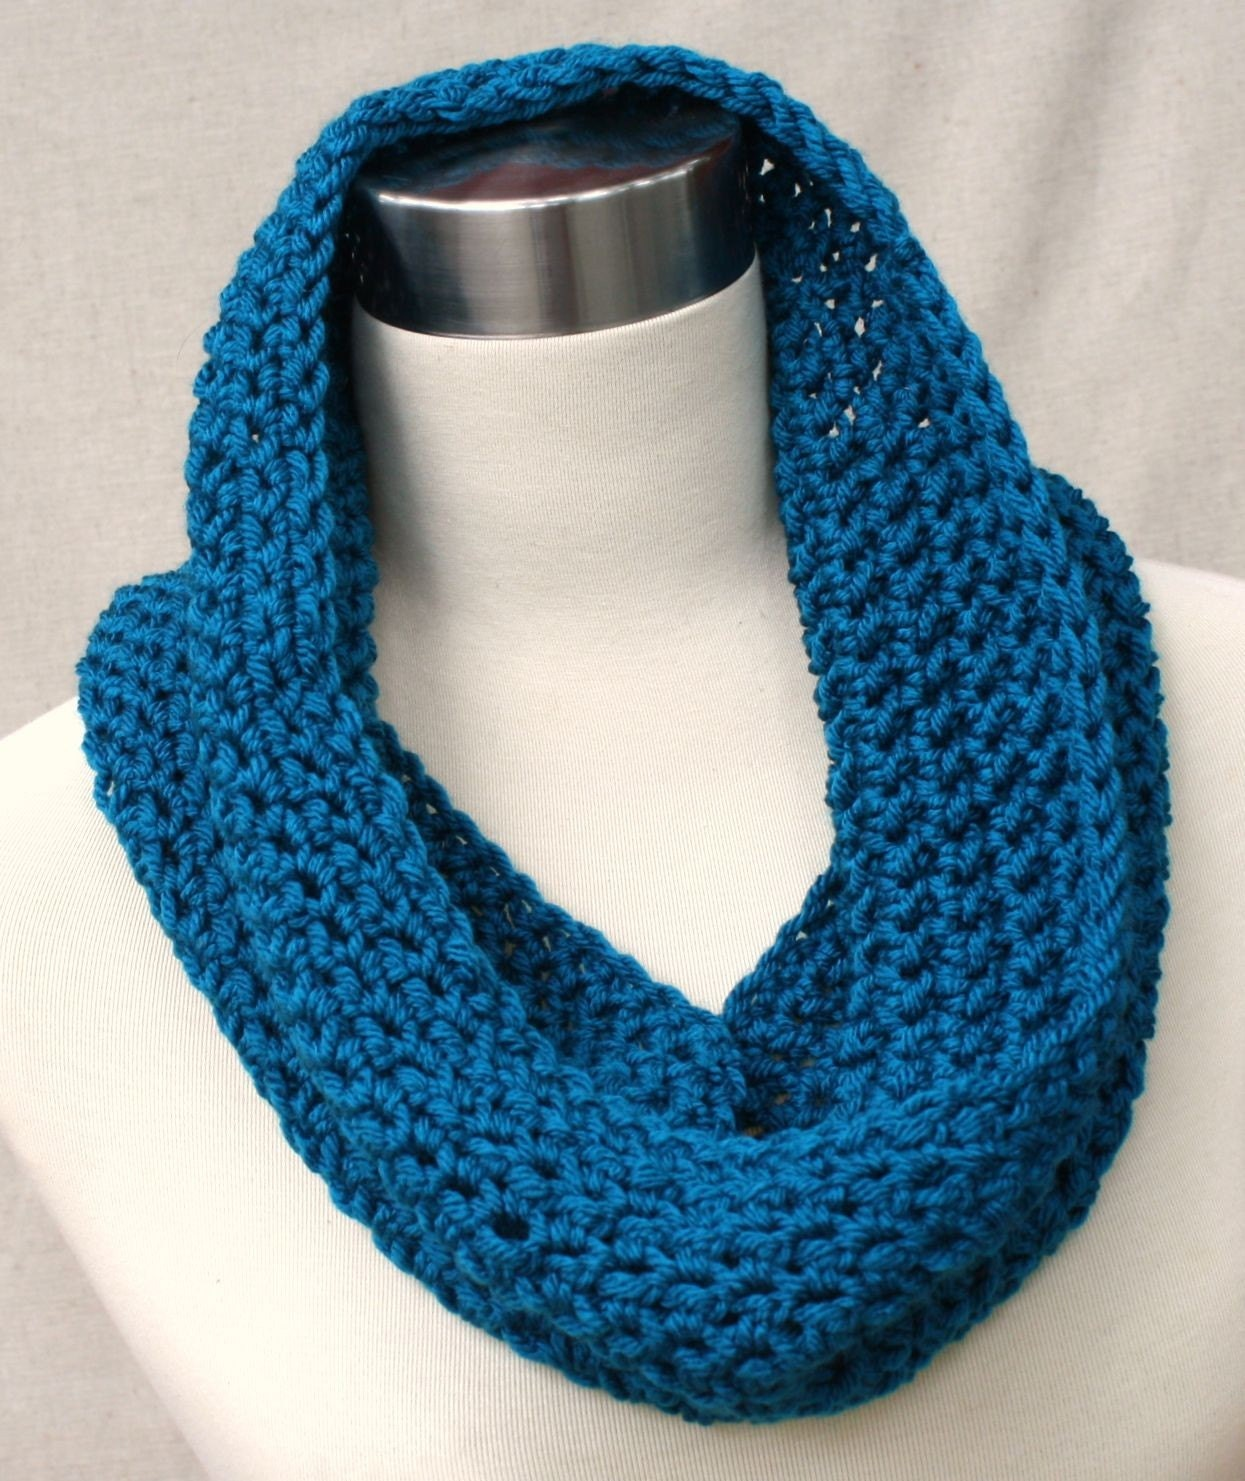 Crochet Teal Cowl Neck Scarfavailable in 36 by mythreeblindmice Cowl Neck Scarves Crochet